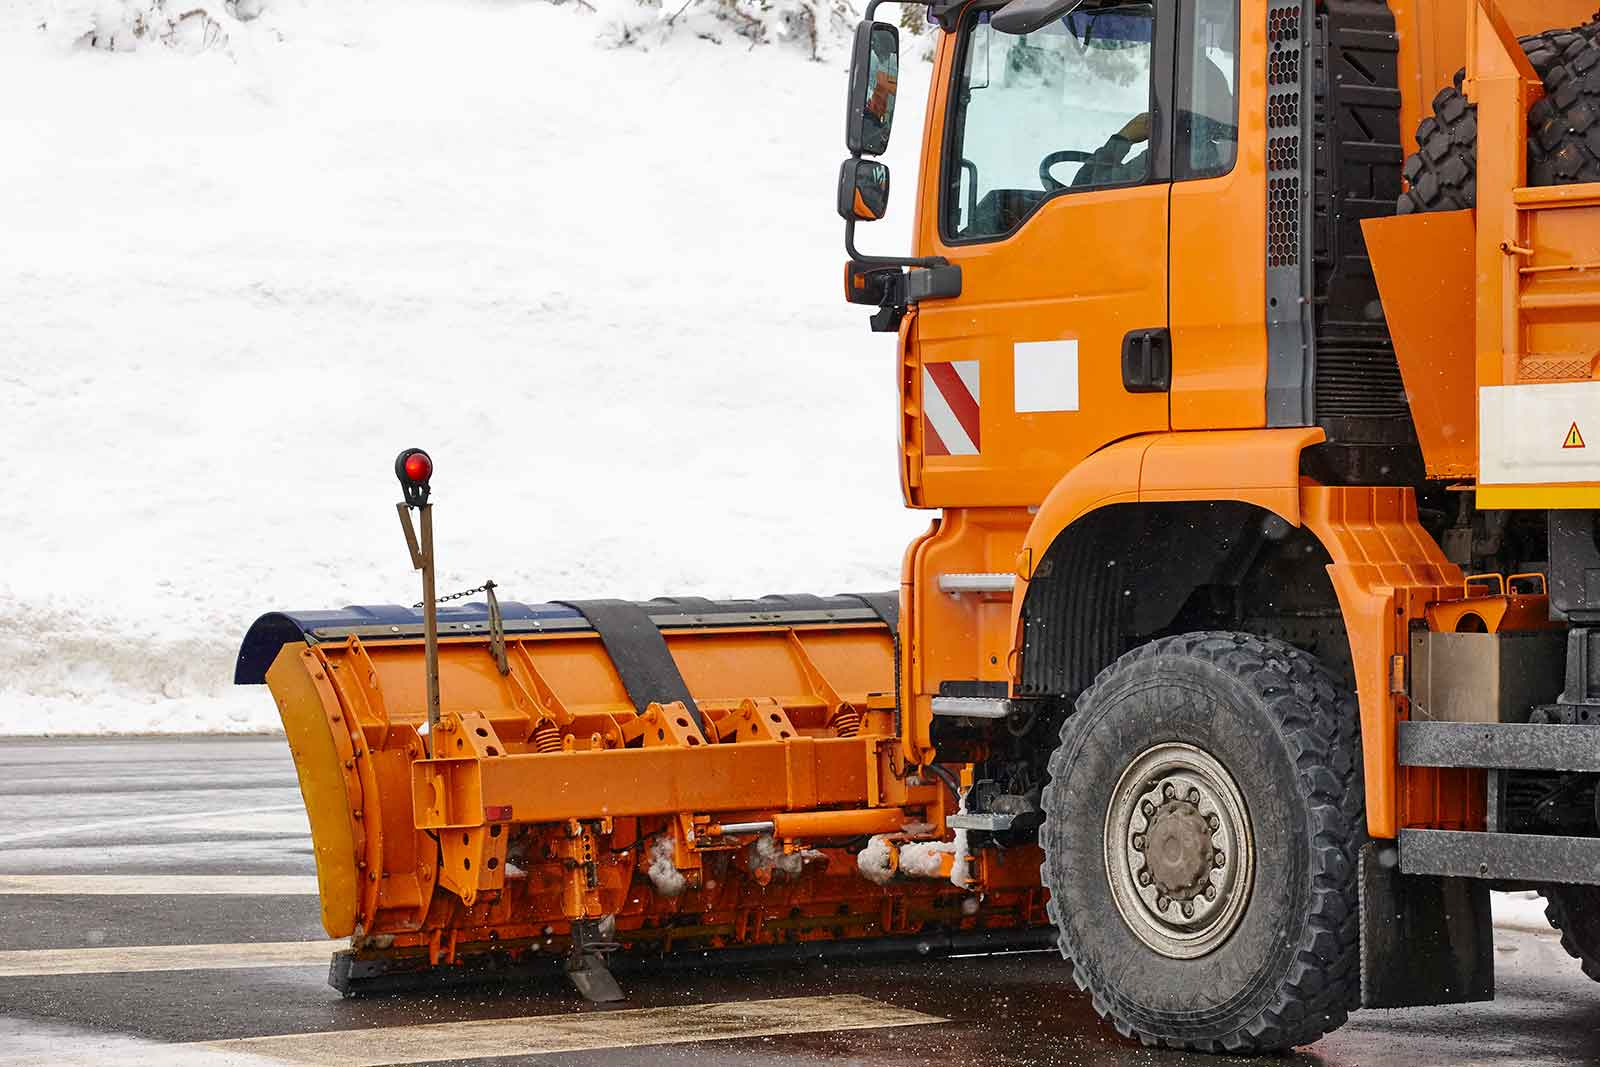 Orange plow on organge truck on road in front of snow